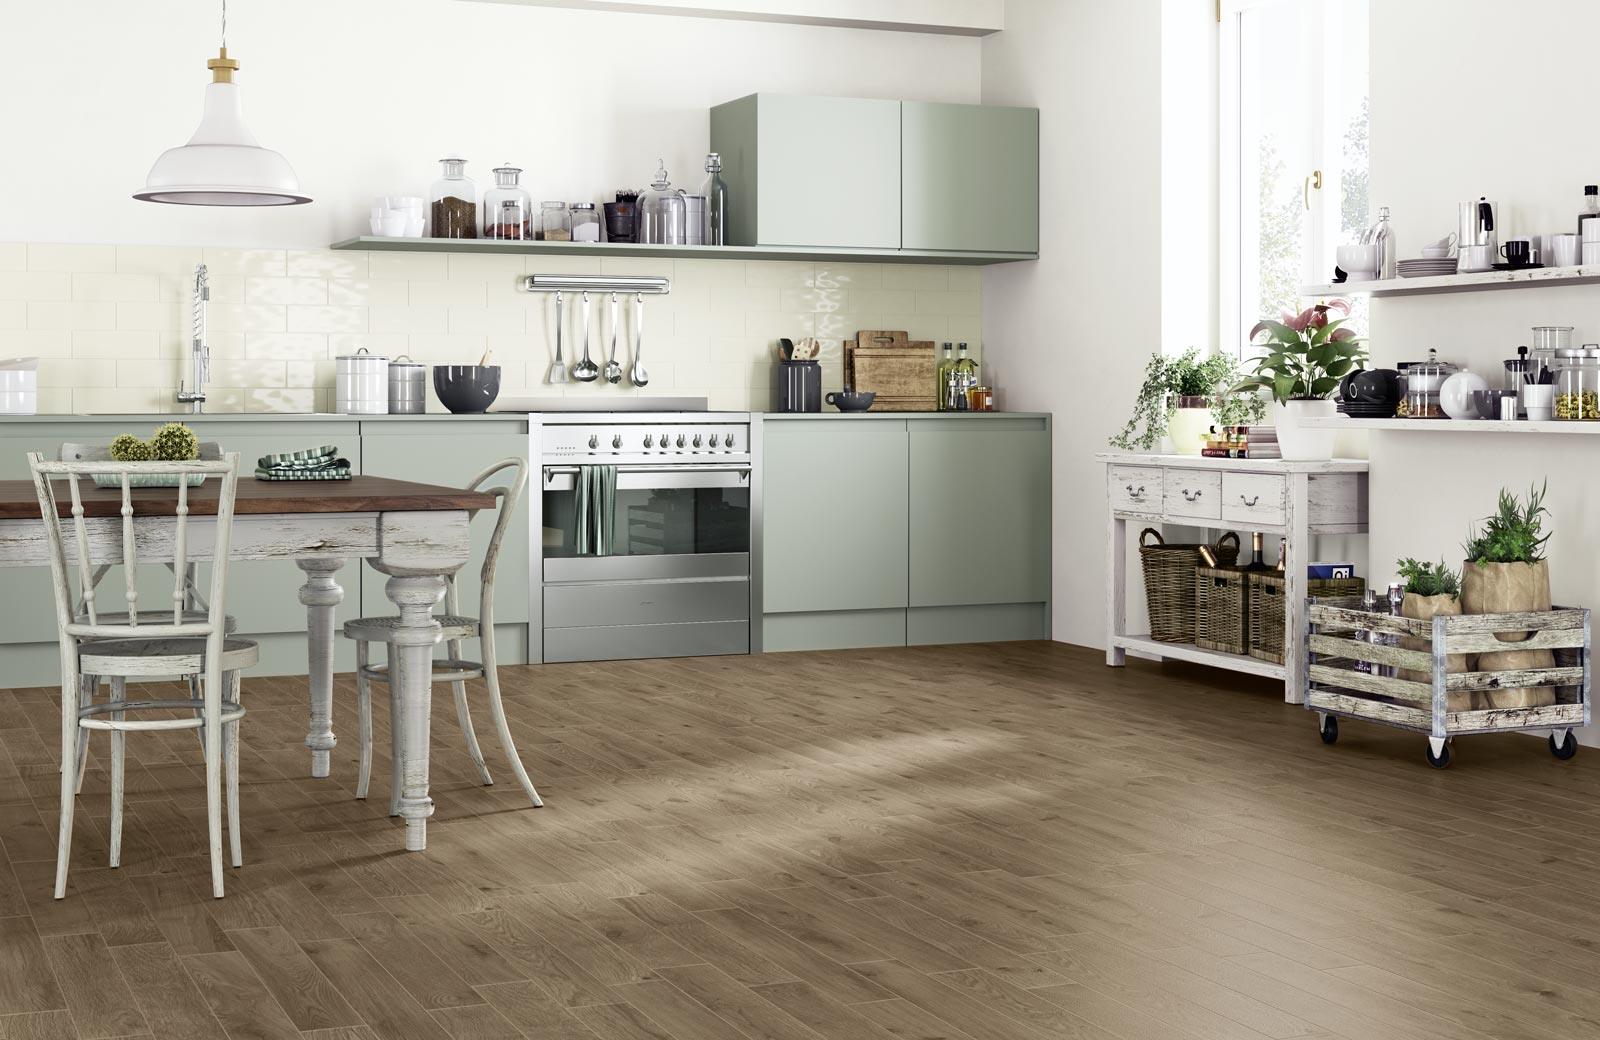 Woodessence porcelain stoneware parquet effect ragno woodessence ceramic tiles ragno6580 dailygadgetfo Image collections